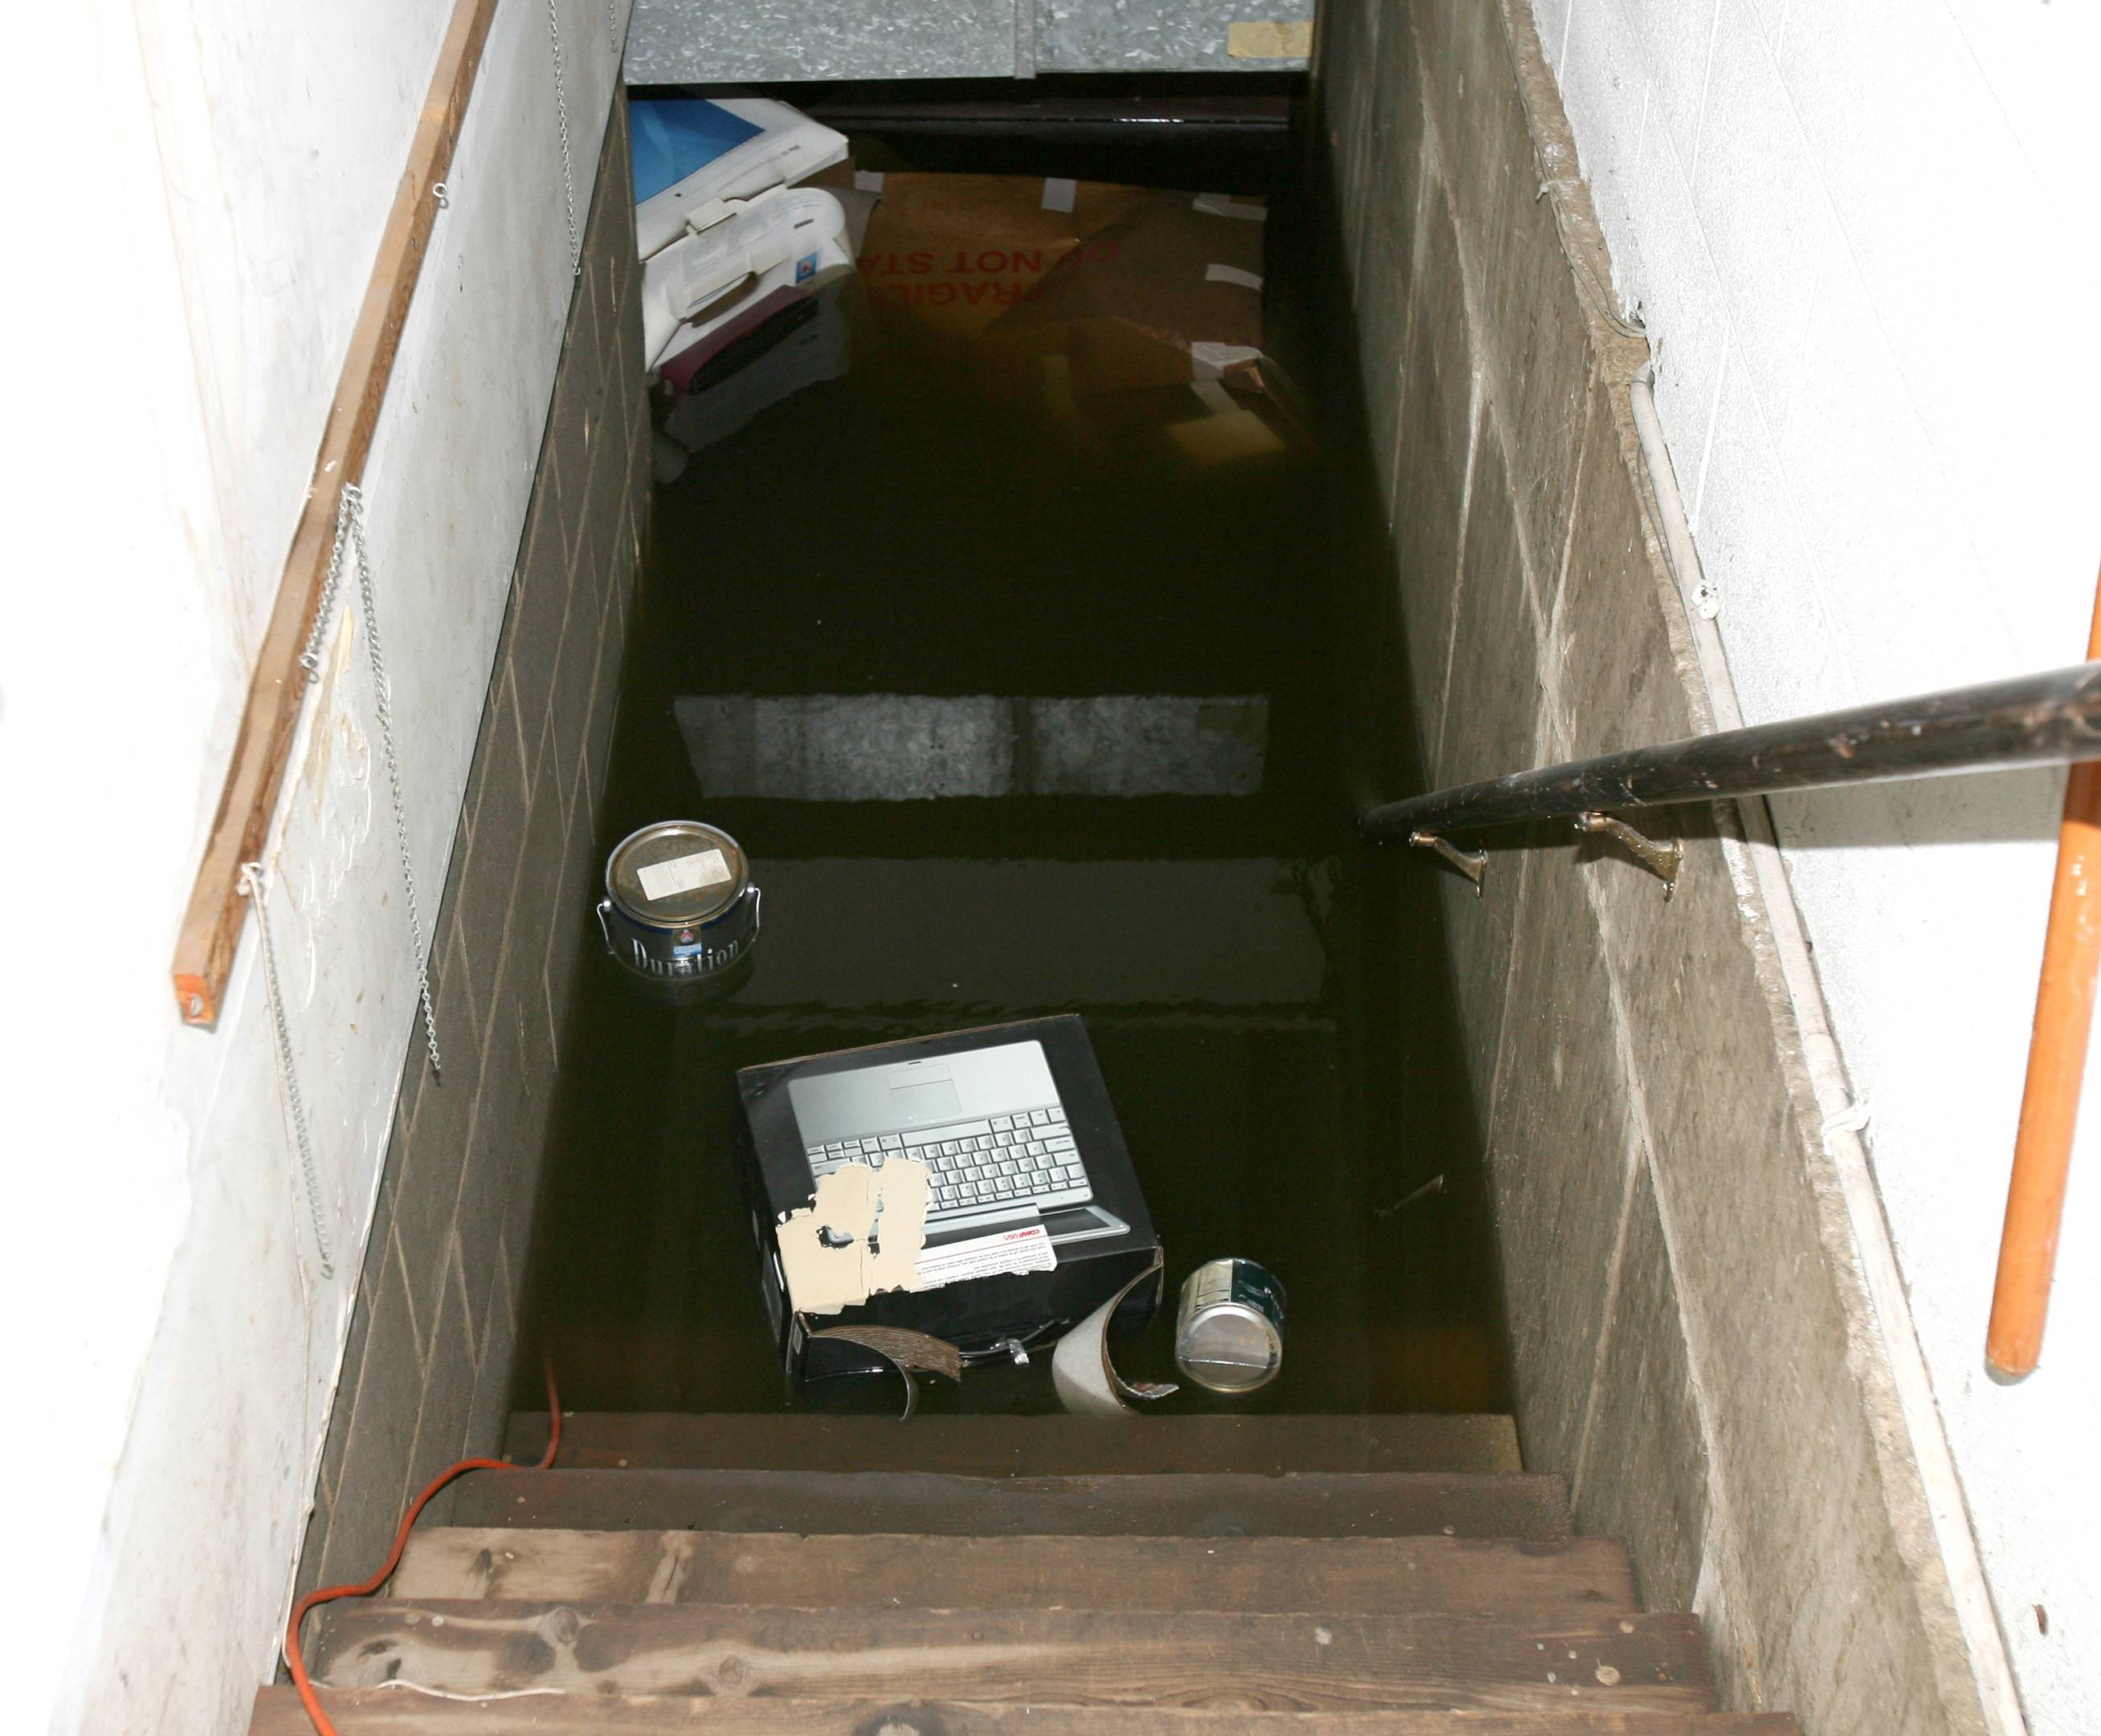 Put safety first if your basement is flooded. There's always the danger of electrocution when water mixes with outlets and appliances.